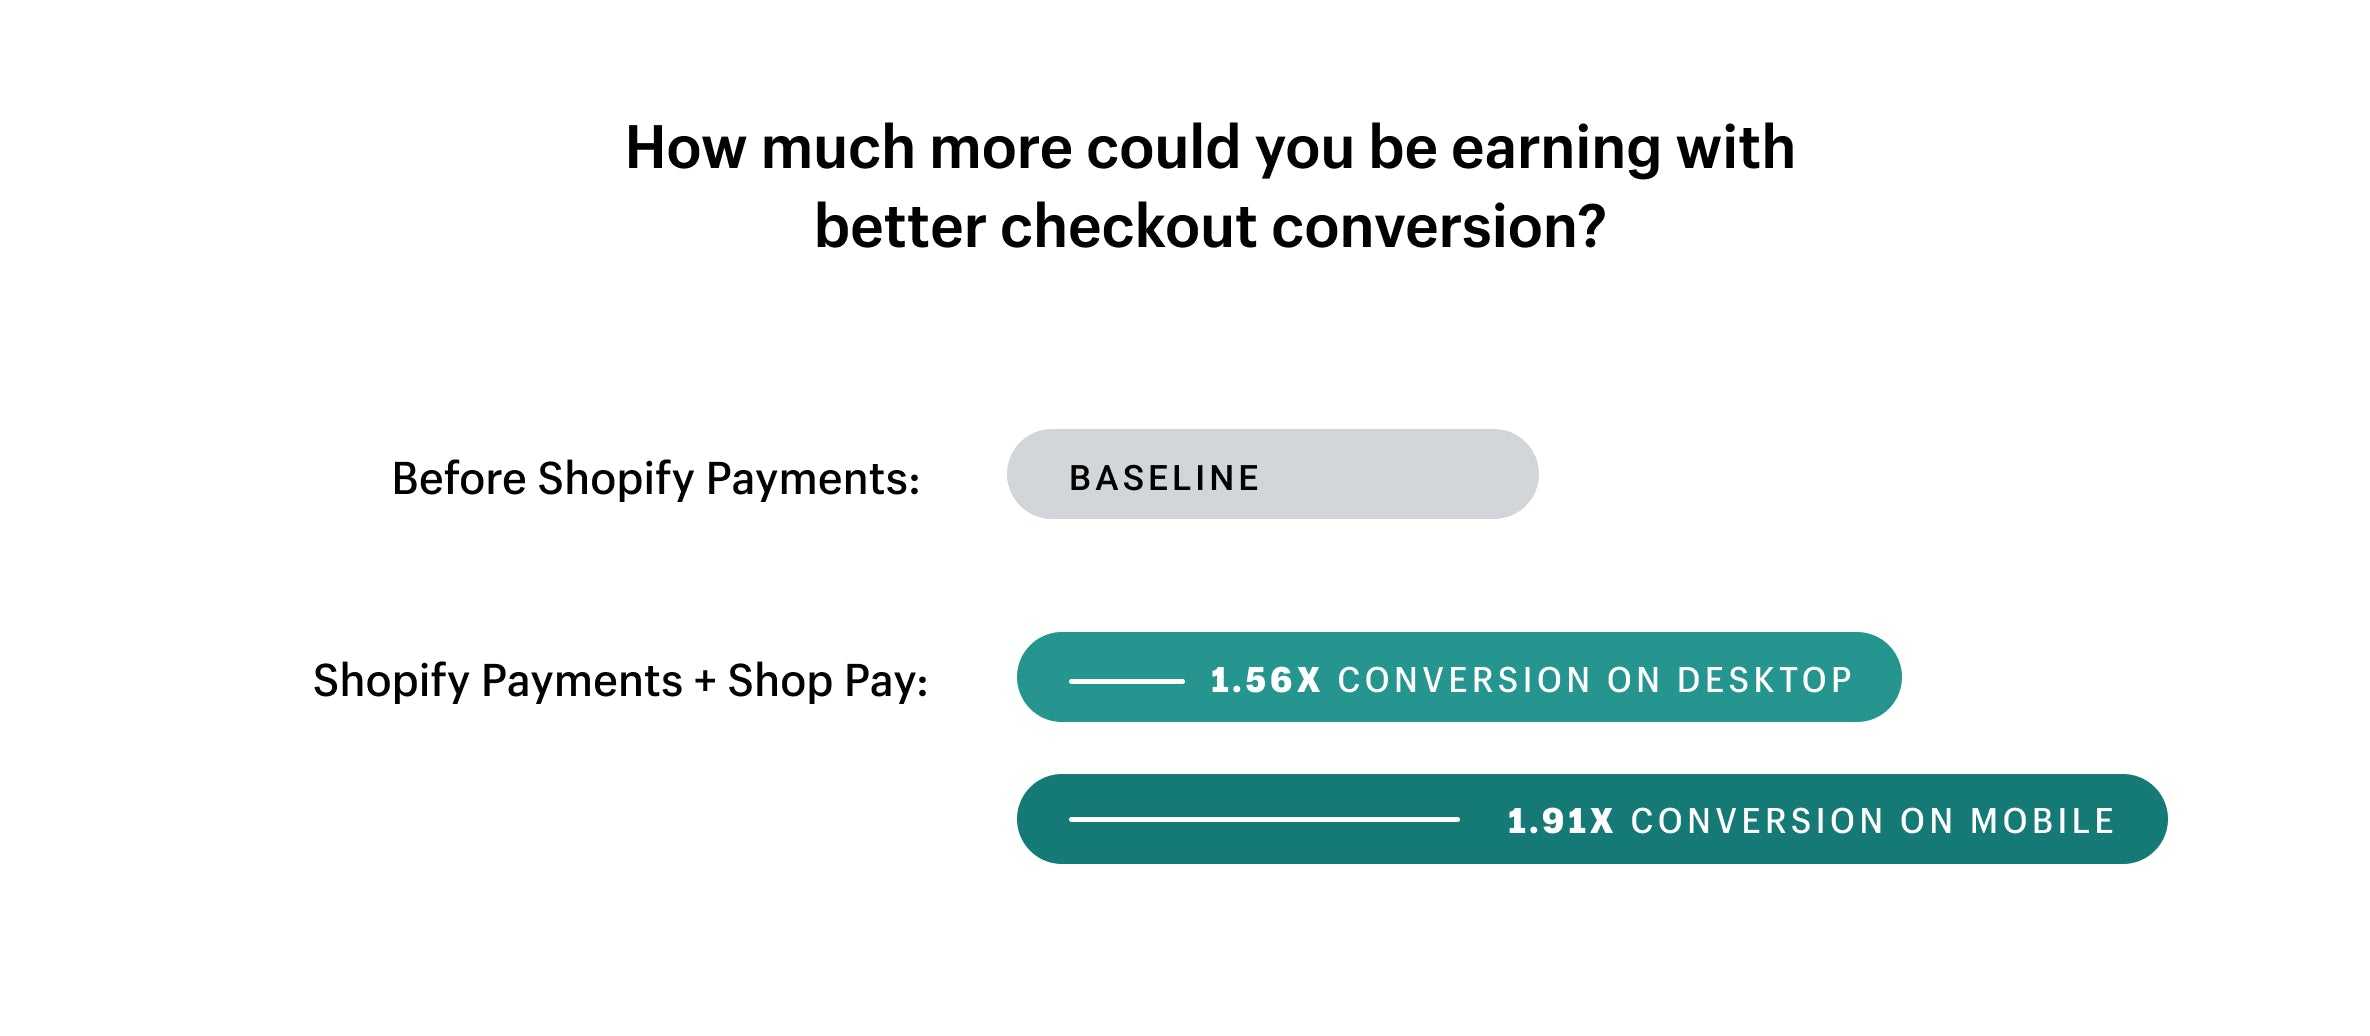 Conversion rates for Shopify Payments.